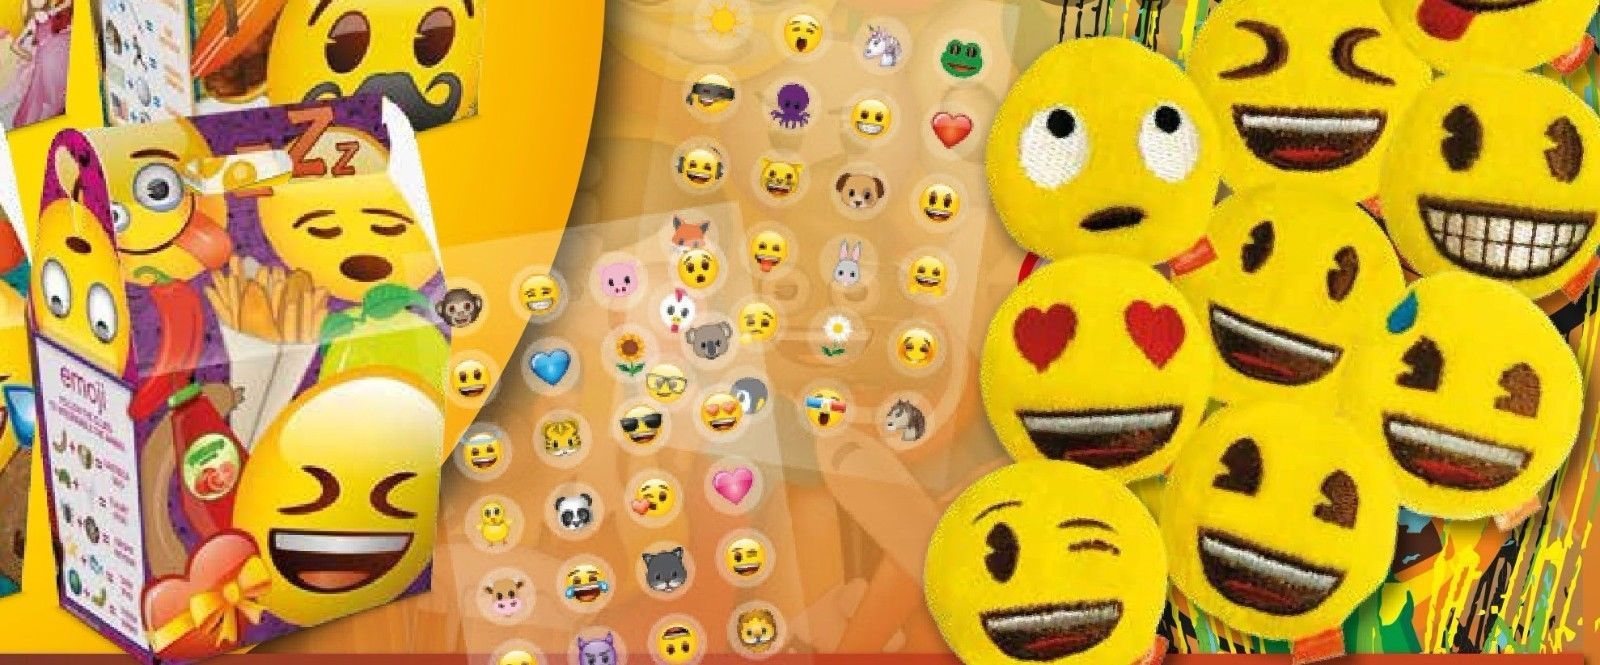 Emoji Birthday Party Bag Sets Cardboard Meal Lunch Box Includes